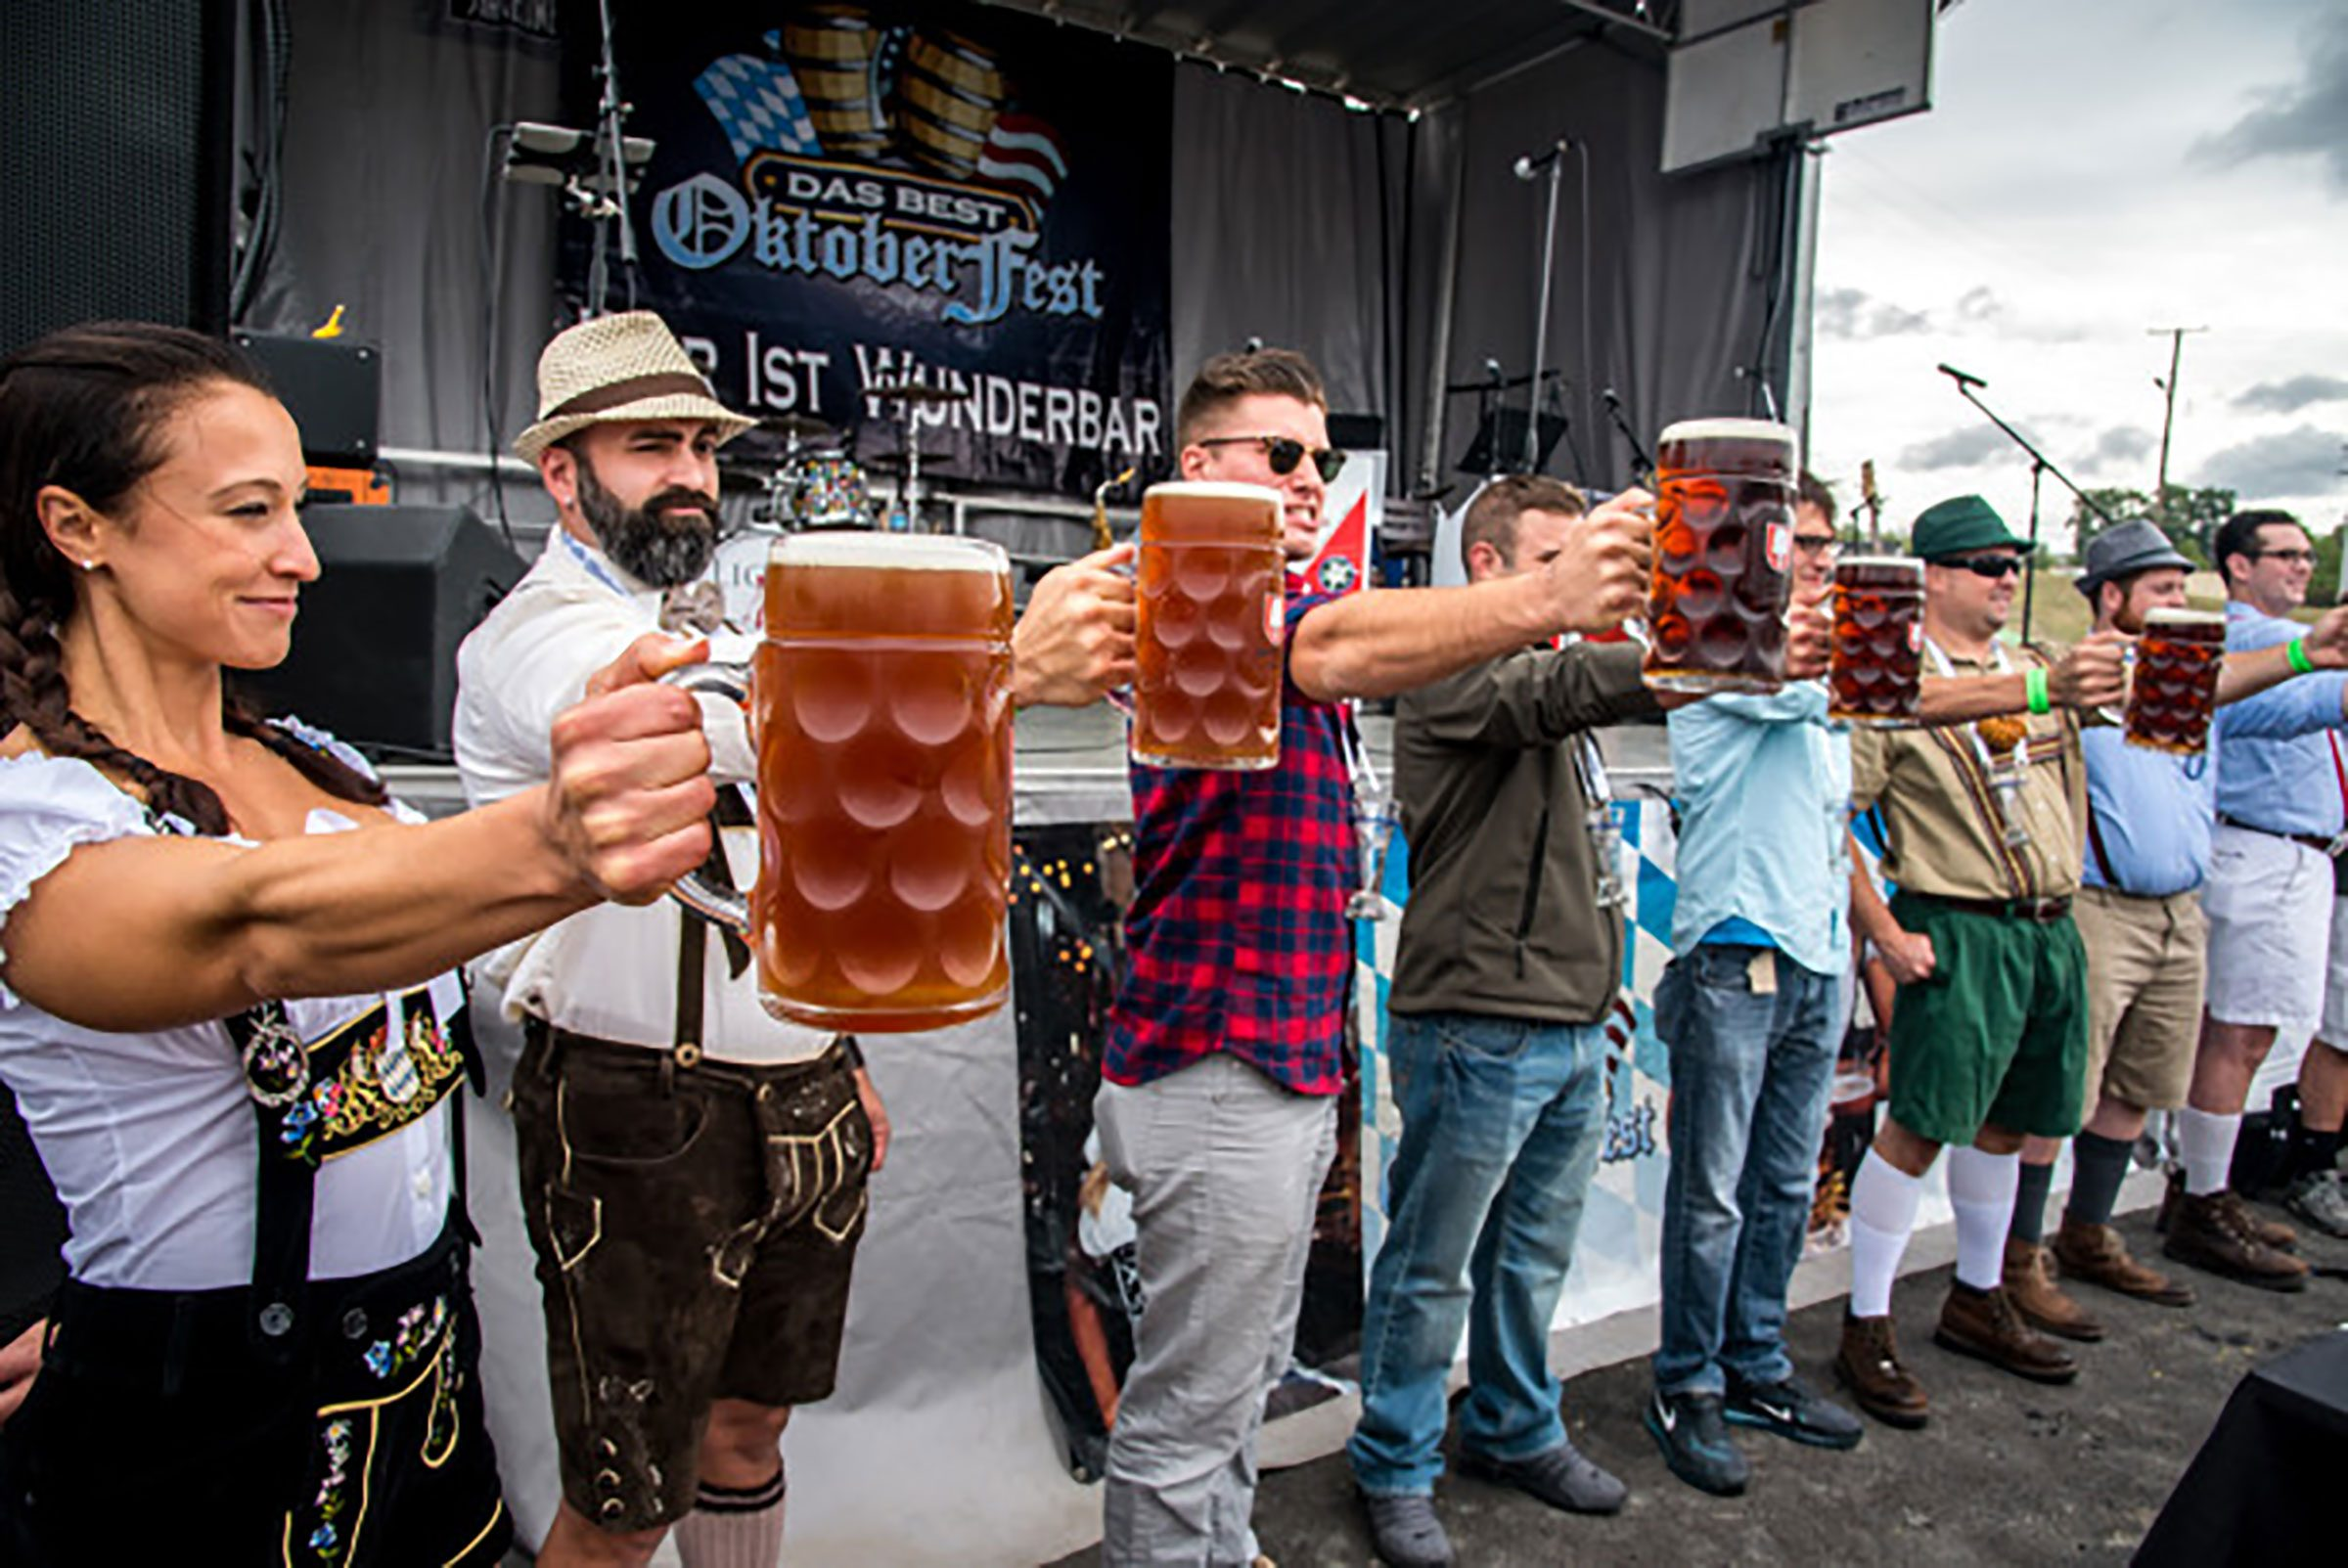 Small-Town Oktoberfest Celebrations You Shouldnu0027t Miss | Readeru0027s Digest  sc 1 st  Readeru0027s Digest & Small-Town Oktoberfest Celebrations You Shouldnu0027t Miss | Readeru0027s ...